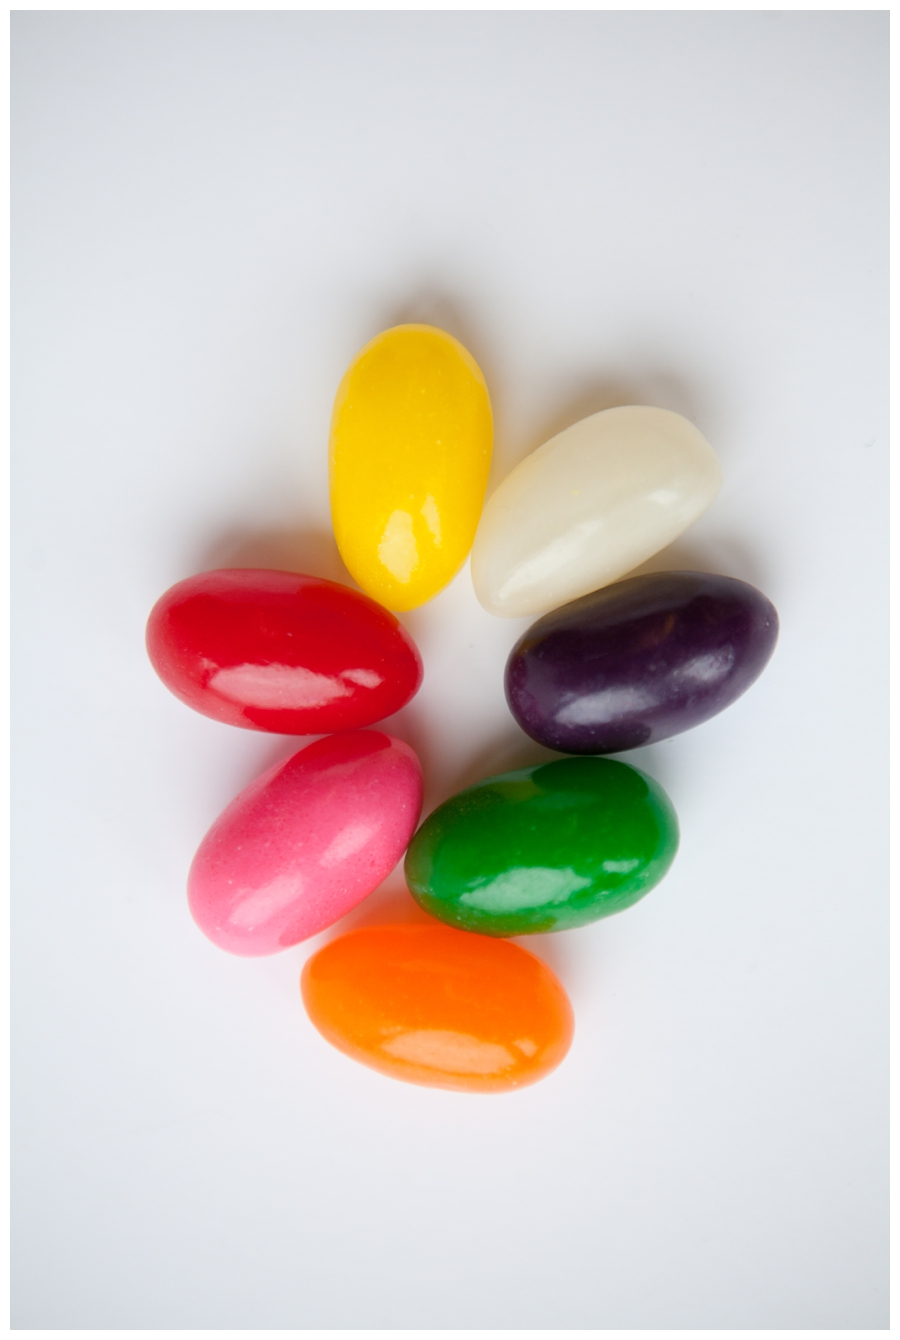 Jumbo Jellybeans - A Tradition Since 1969